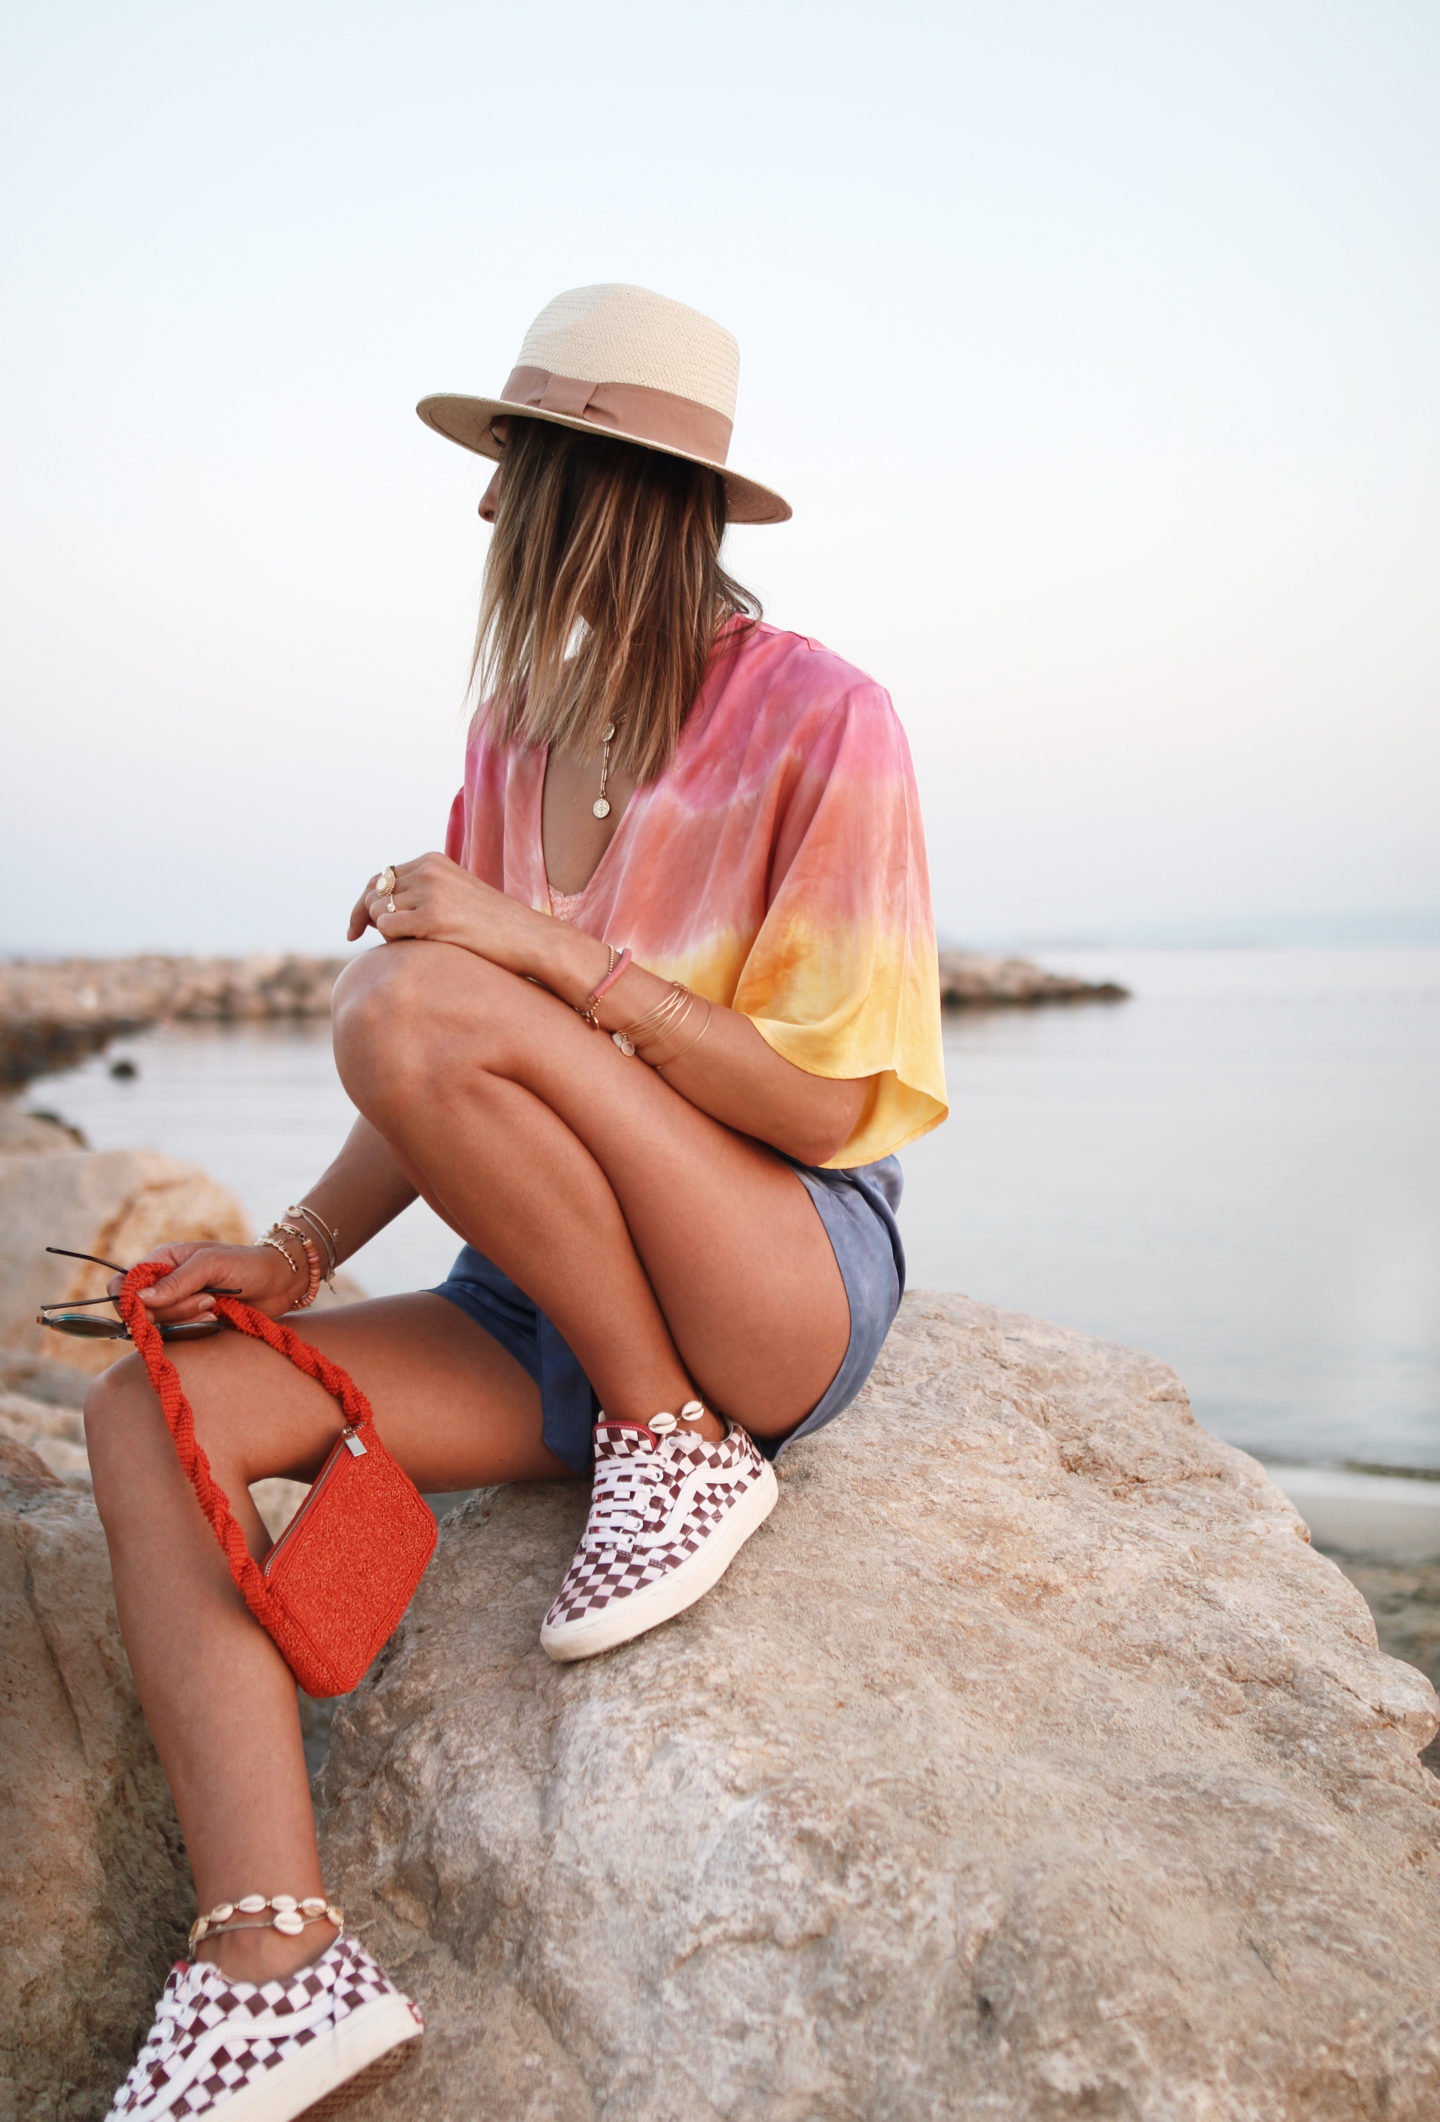 COMBISHORT CHASER, SUMMER OUTFIT @chon.and.chon